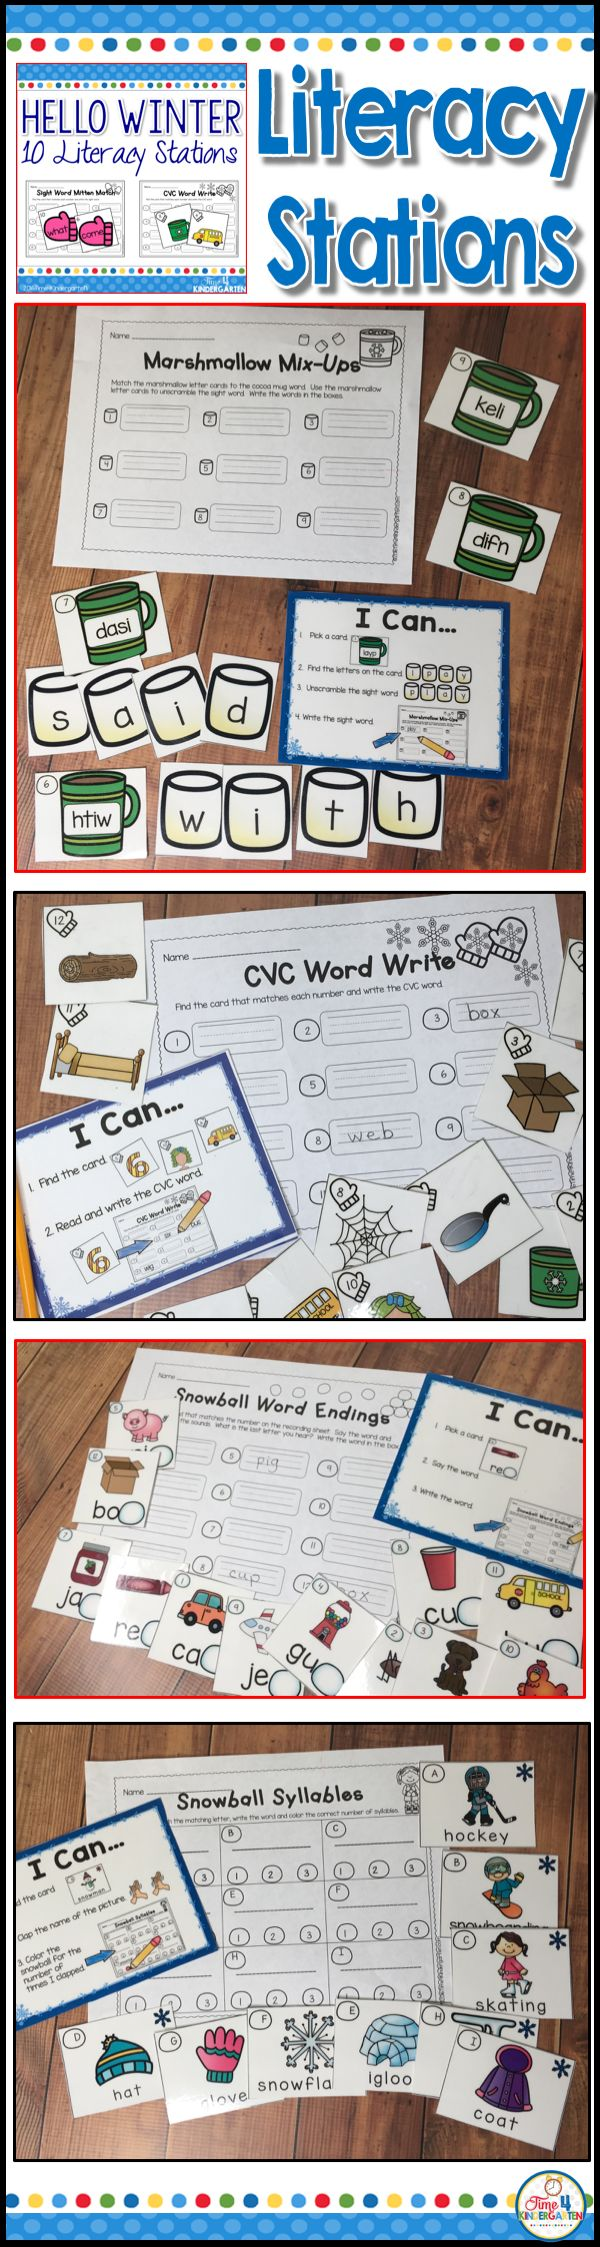 Winter literacy stations for kindergarten are perfect for January.  !0 Fun winter themed centers focussing on sight words, syllables, ending sounds, vowels, rhyming and so much more.